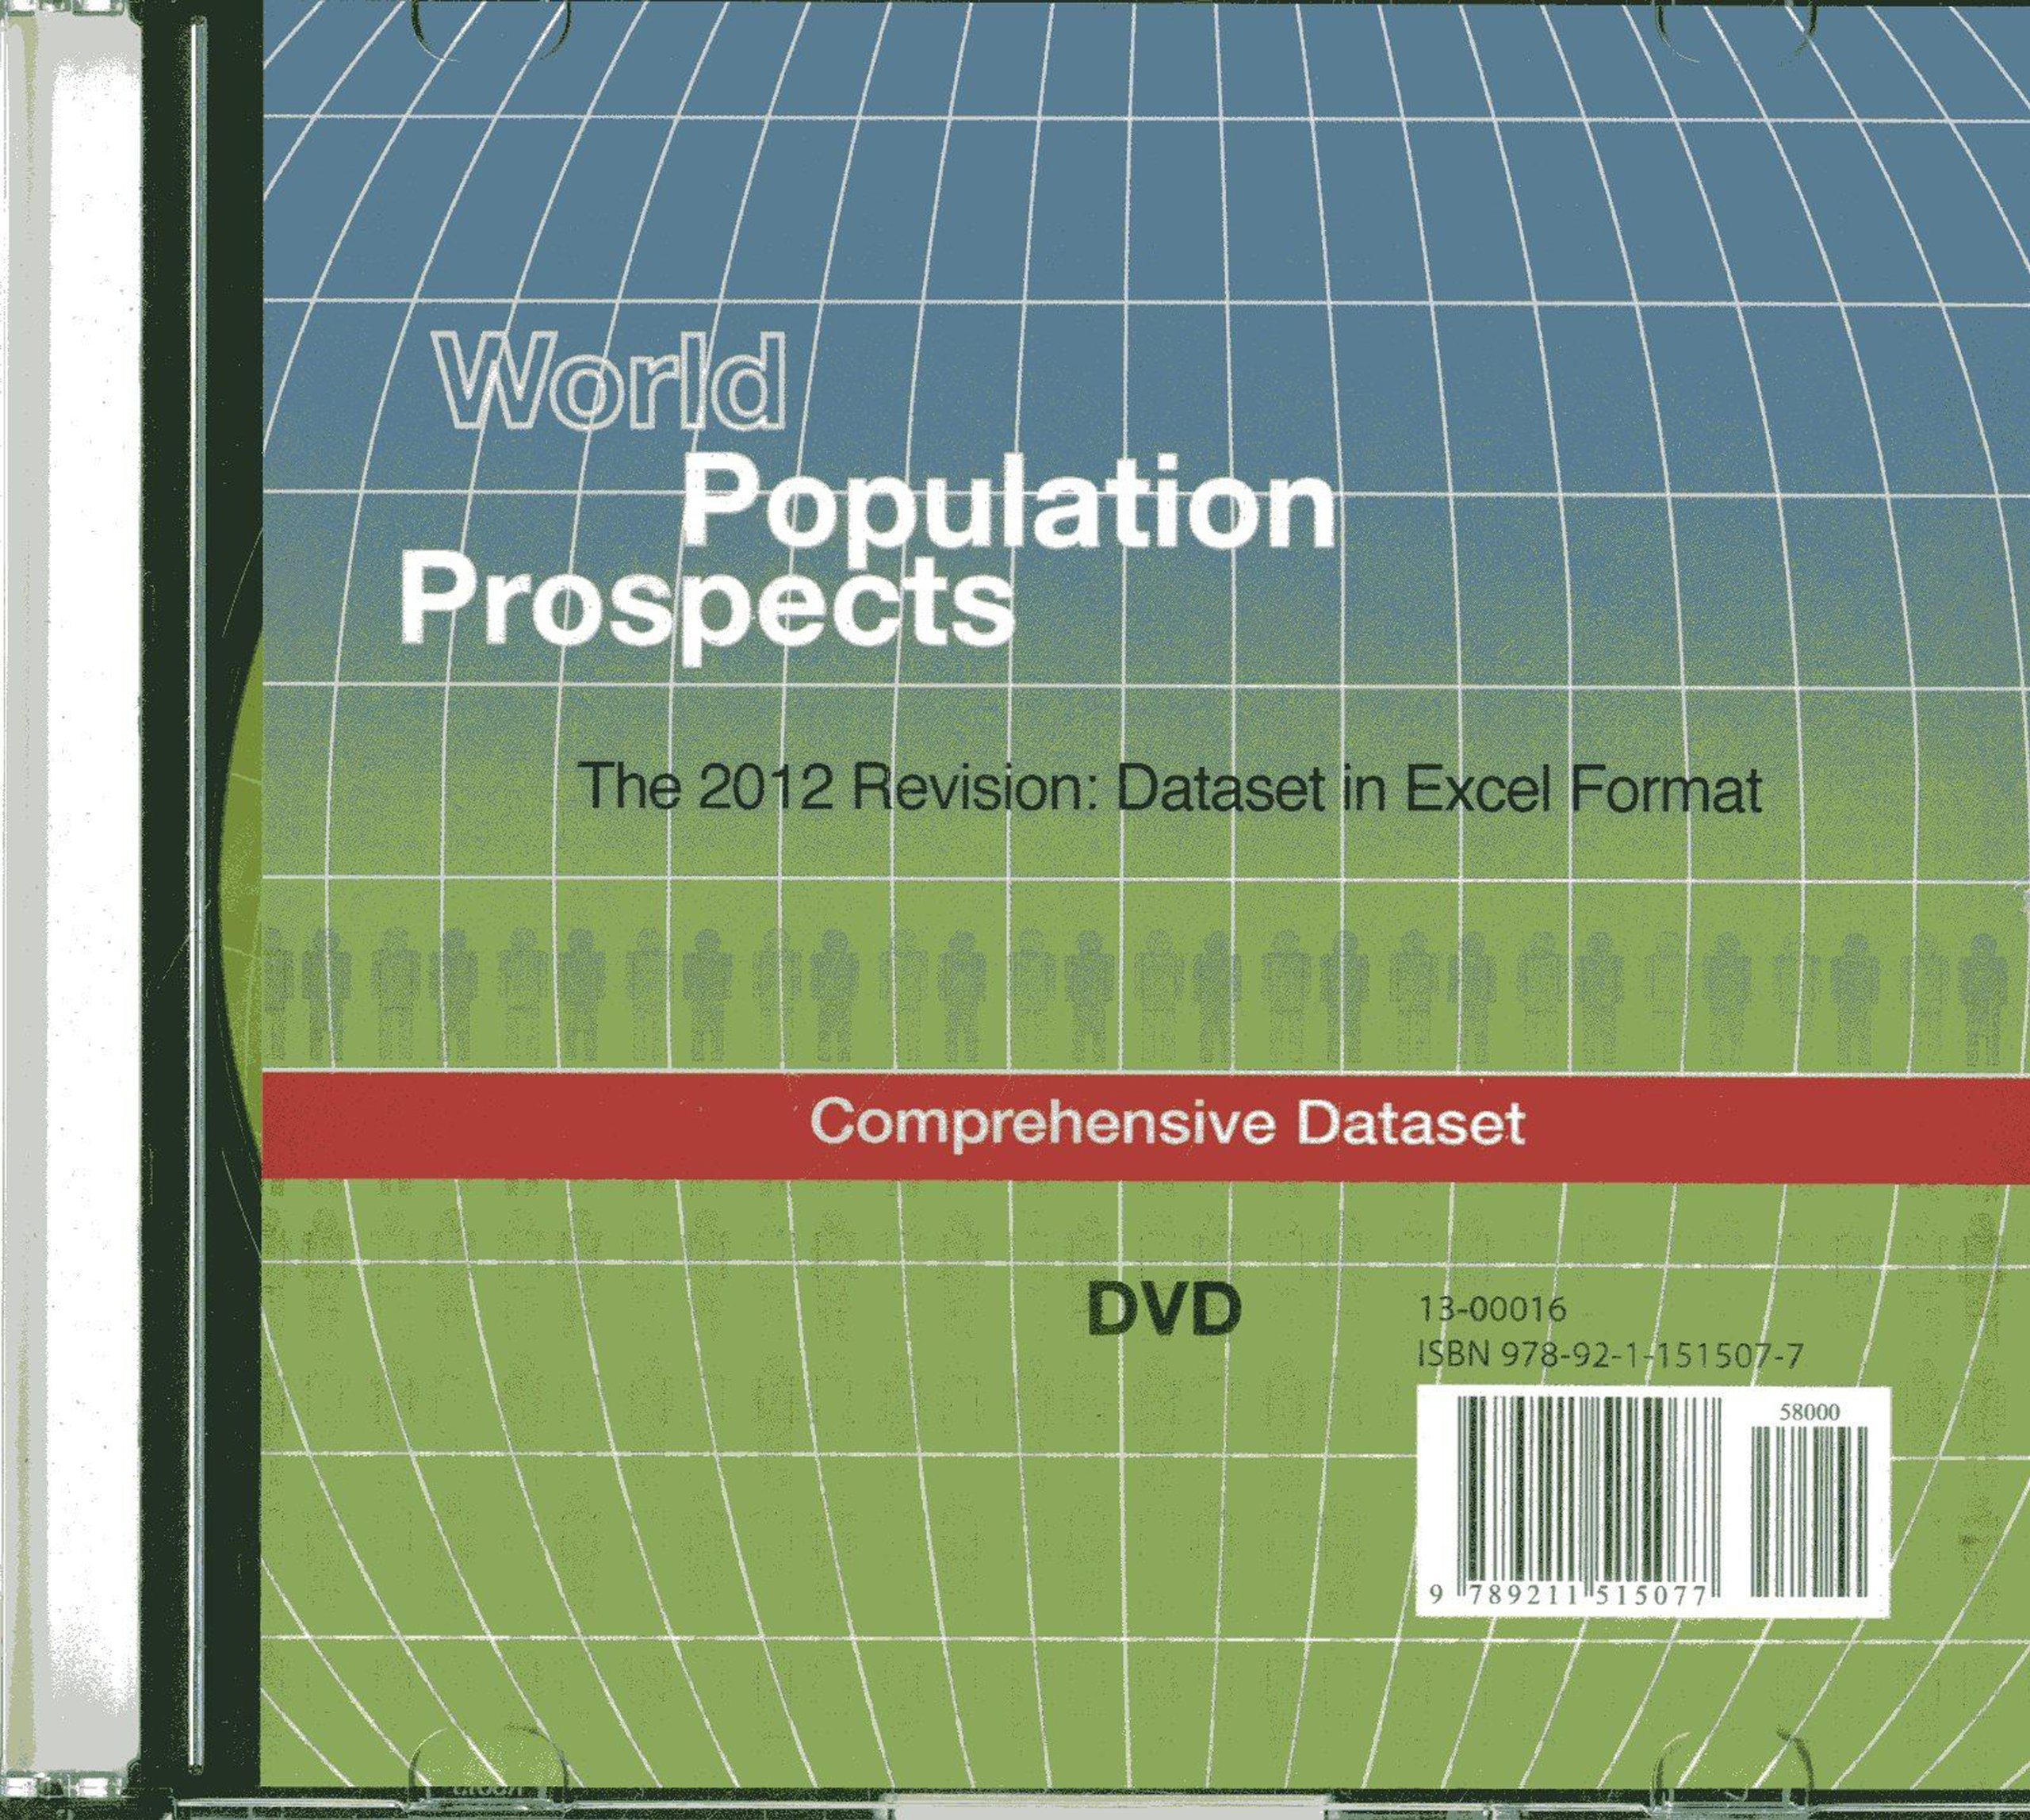 World Population Prospects (DVD-ROM): The 2012 Revision - Comprehensive Dataset in Excel (Population Studies)